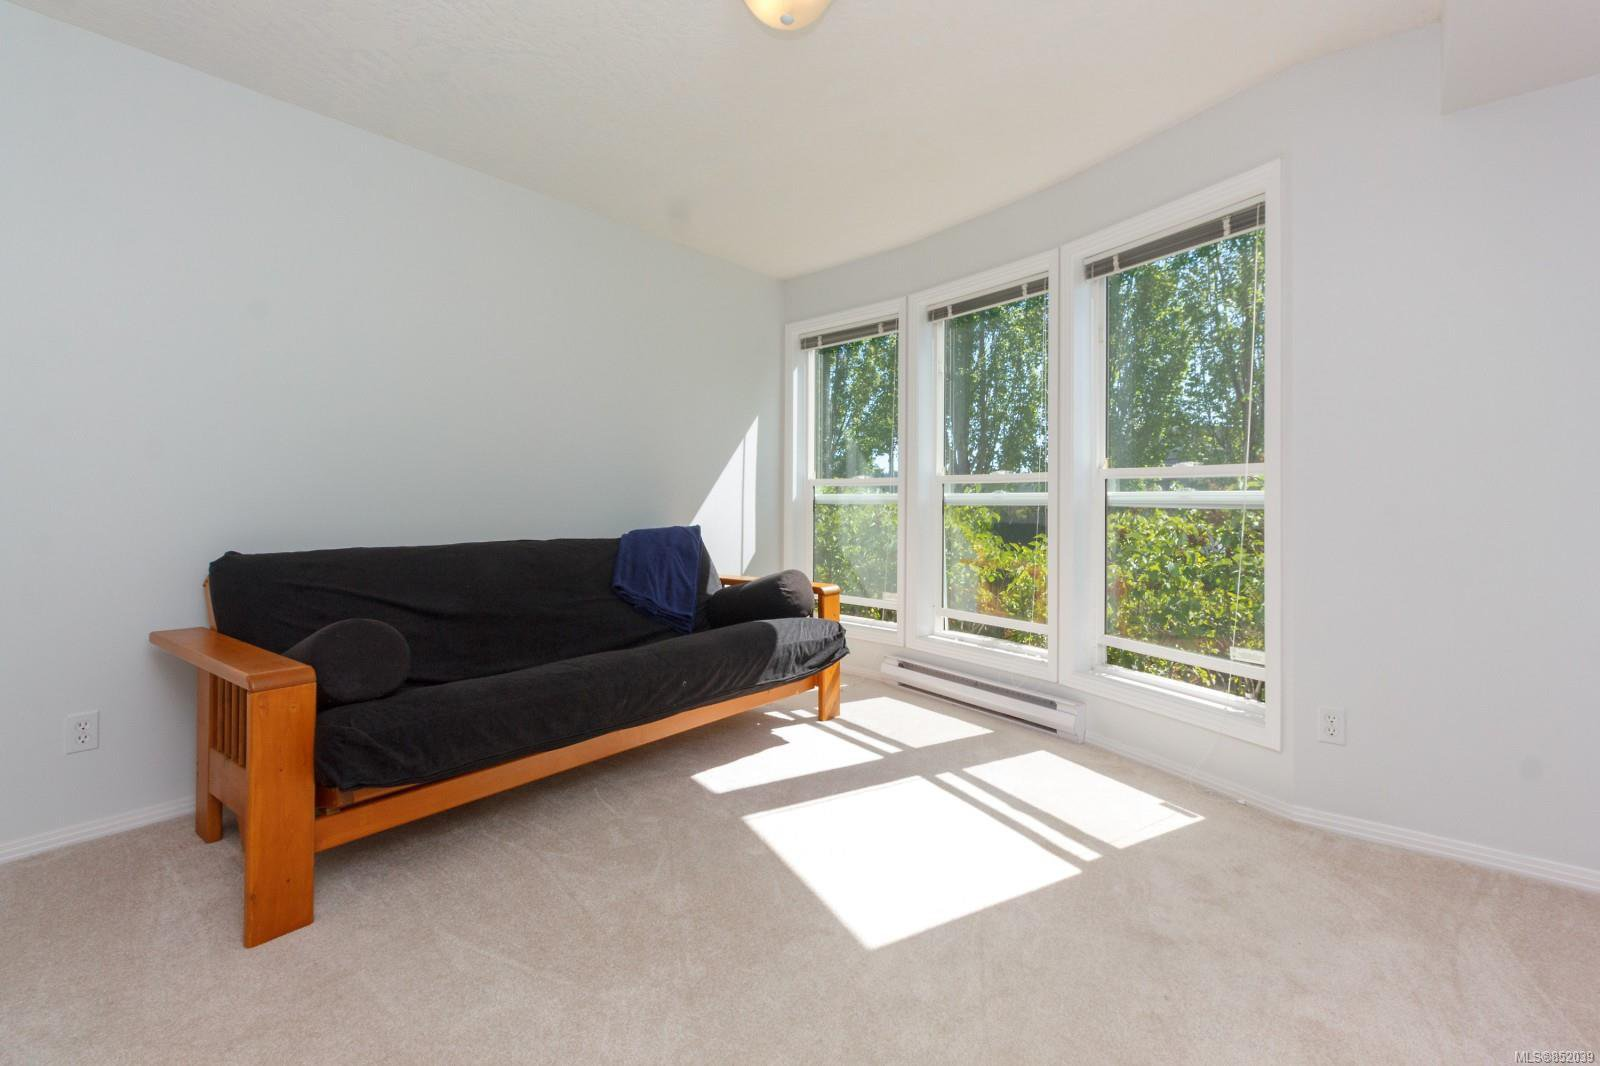 Photo 16: Photos: 109 1240 Verdier Ave in : CS Brentwood Bay Condo for sale (Central Saanich)  : MLS®# 852039